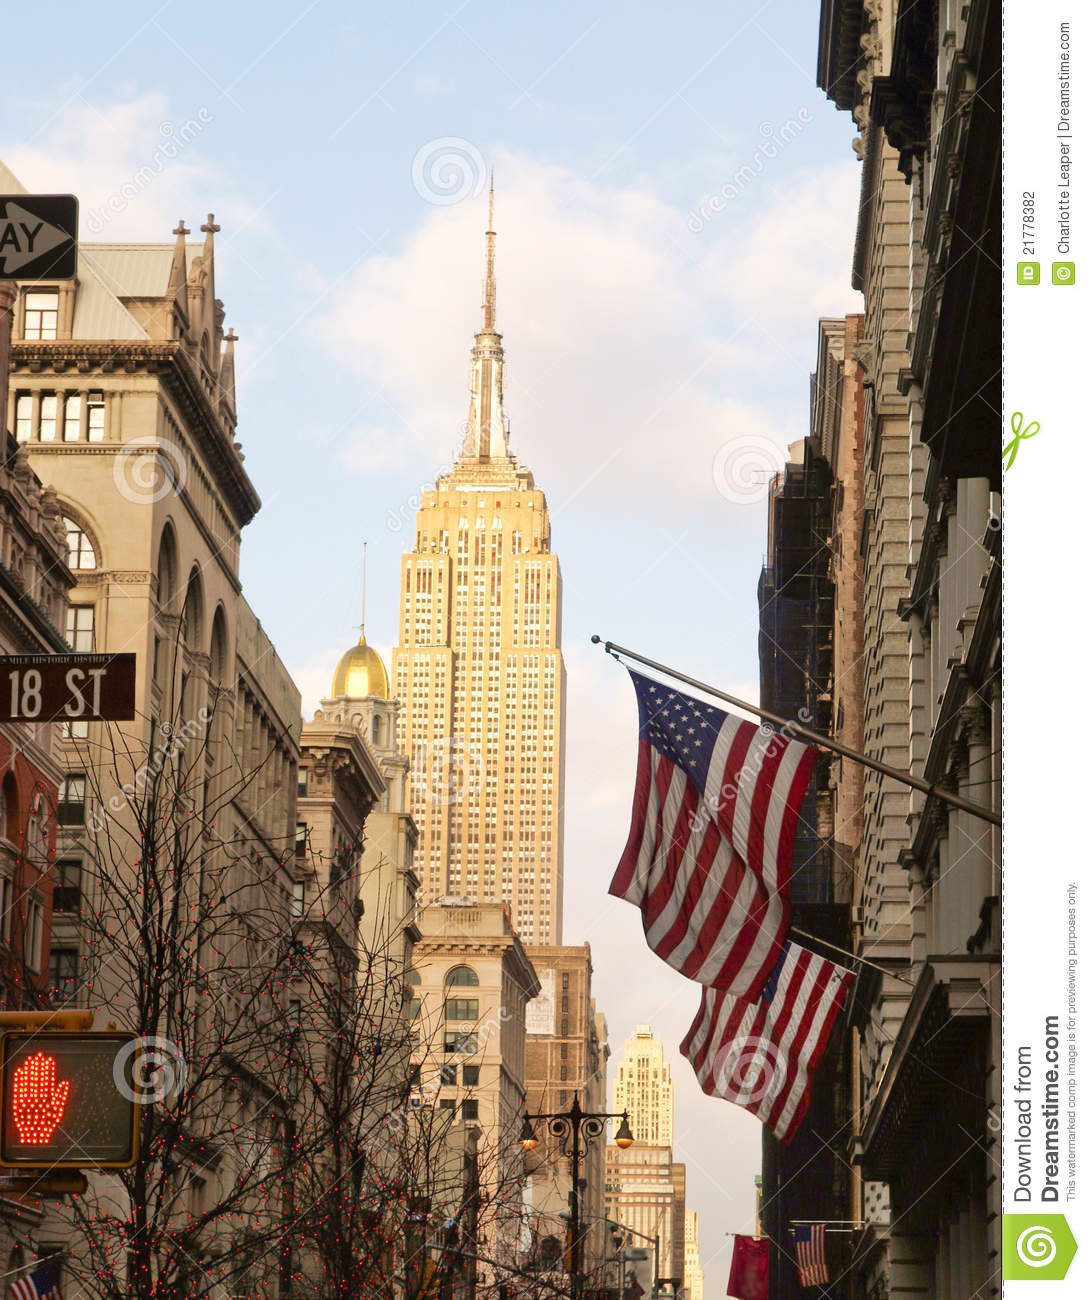 New York Street View Editorial Photography Image 21778382